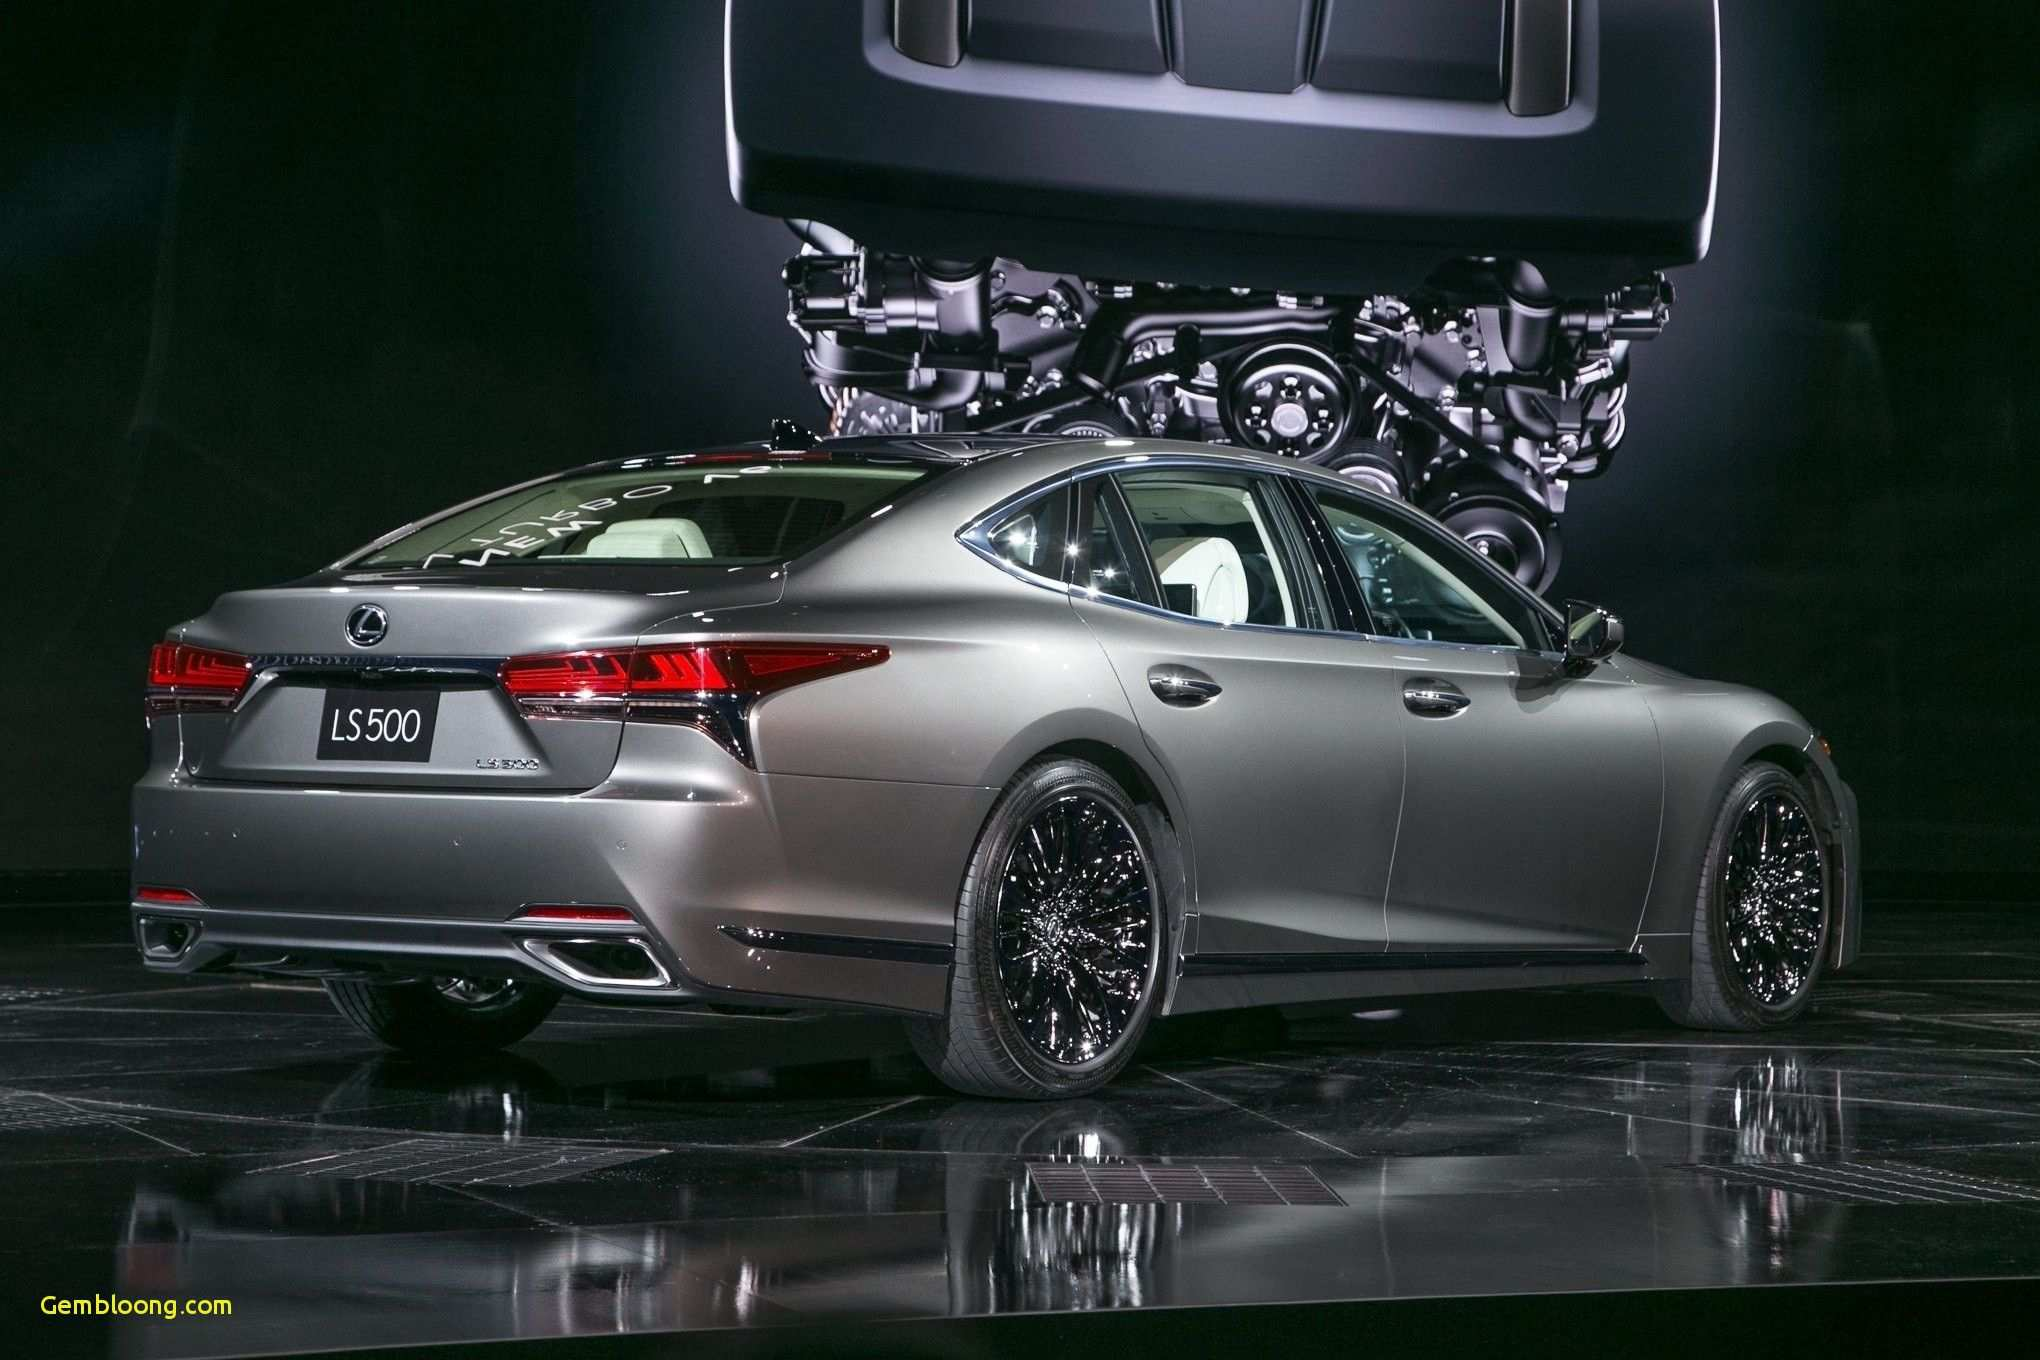 14 New 2020 Lexus Ls 460 First Drive